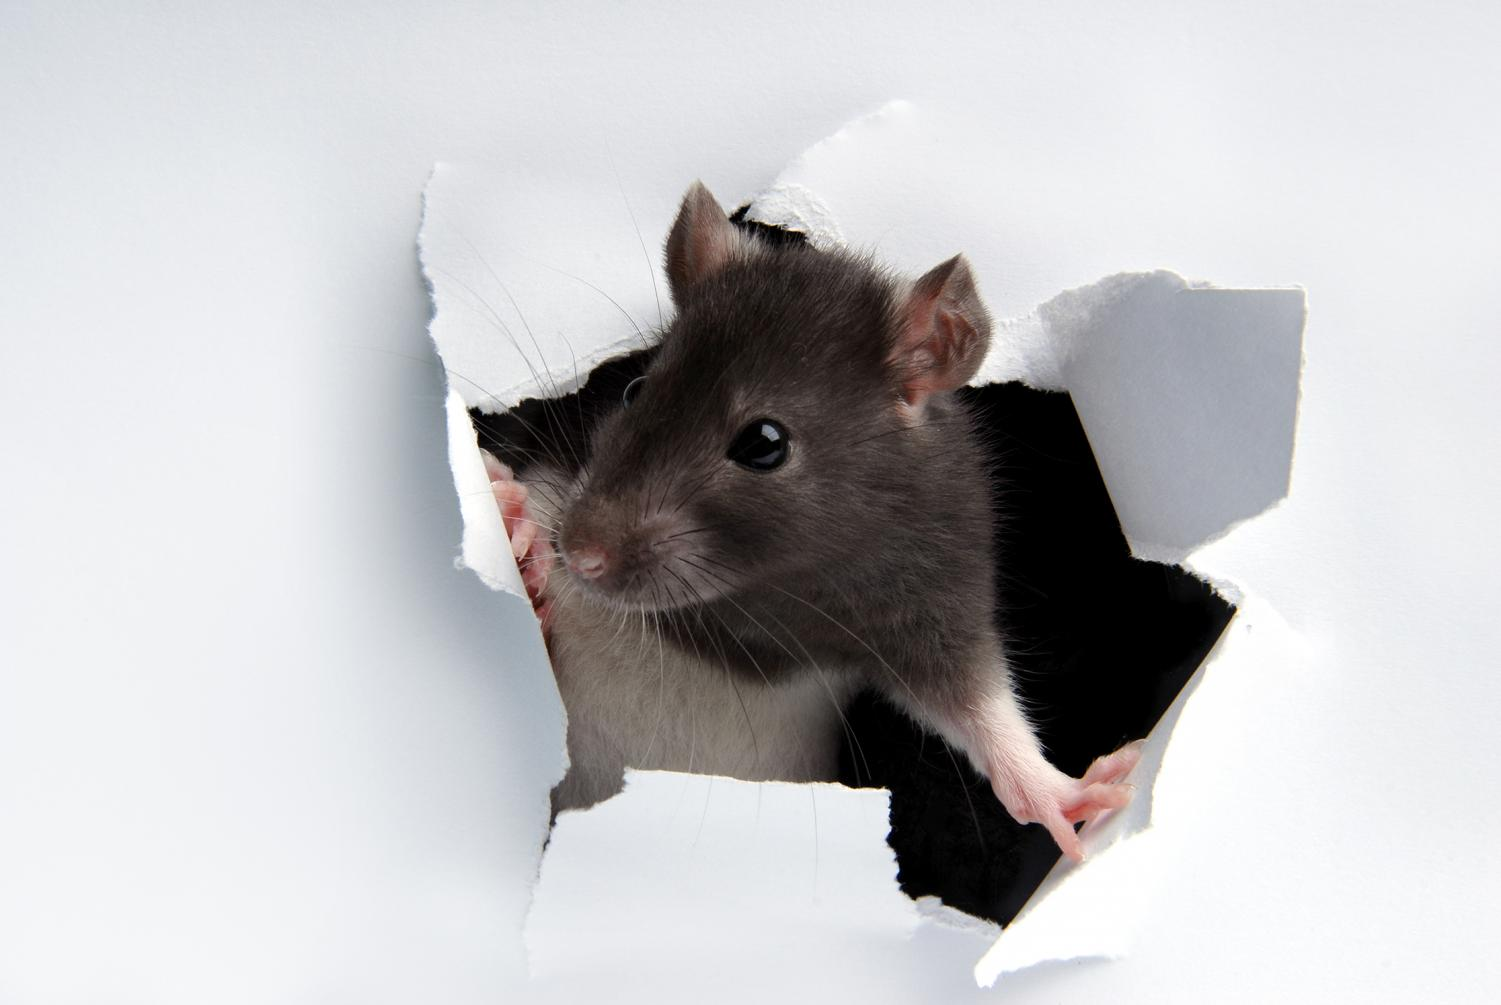 Rodent droppings have been found in the Biology building basement at Cal State LA.